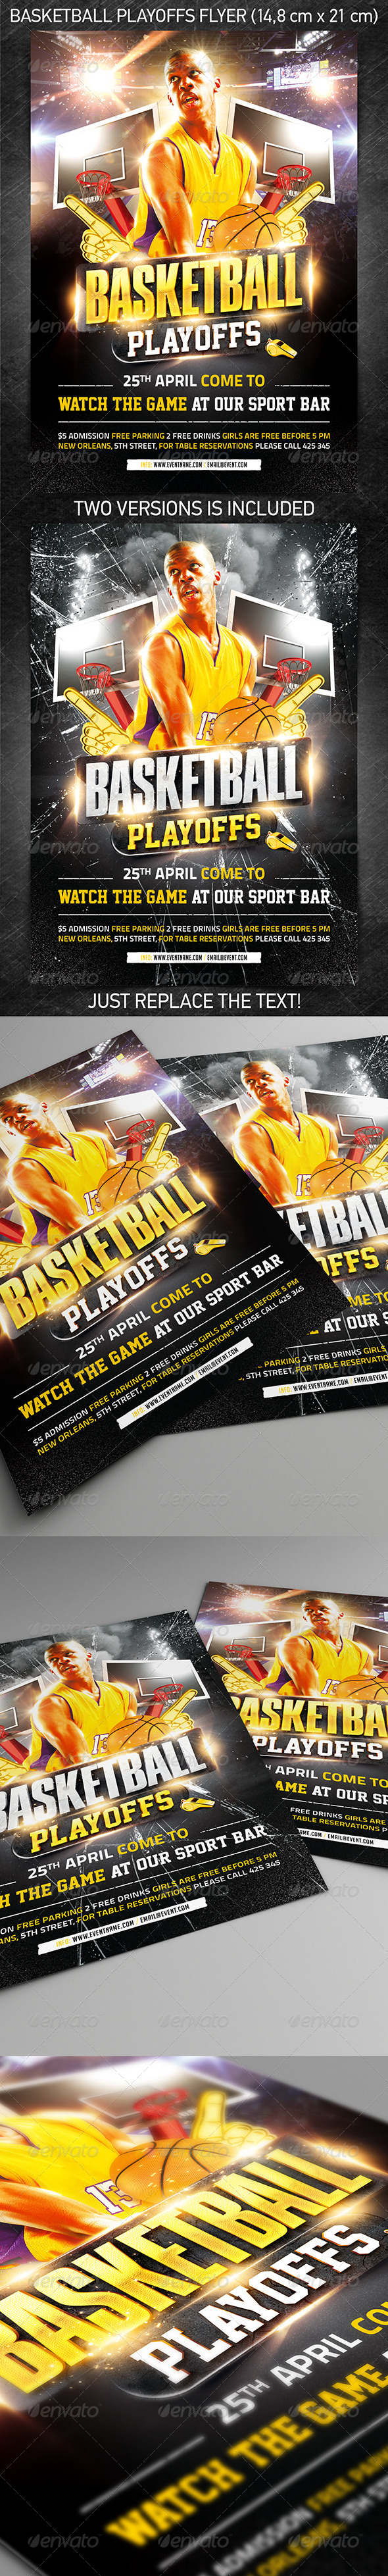 Basketball Playoffs Flyer - Sports Events